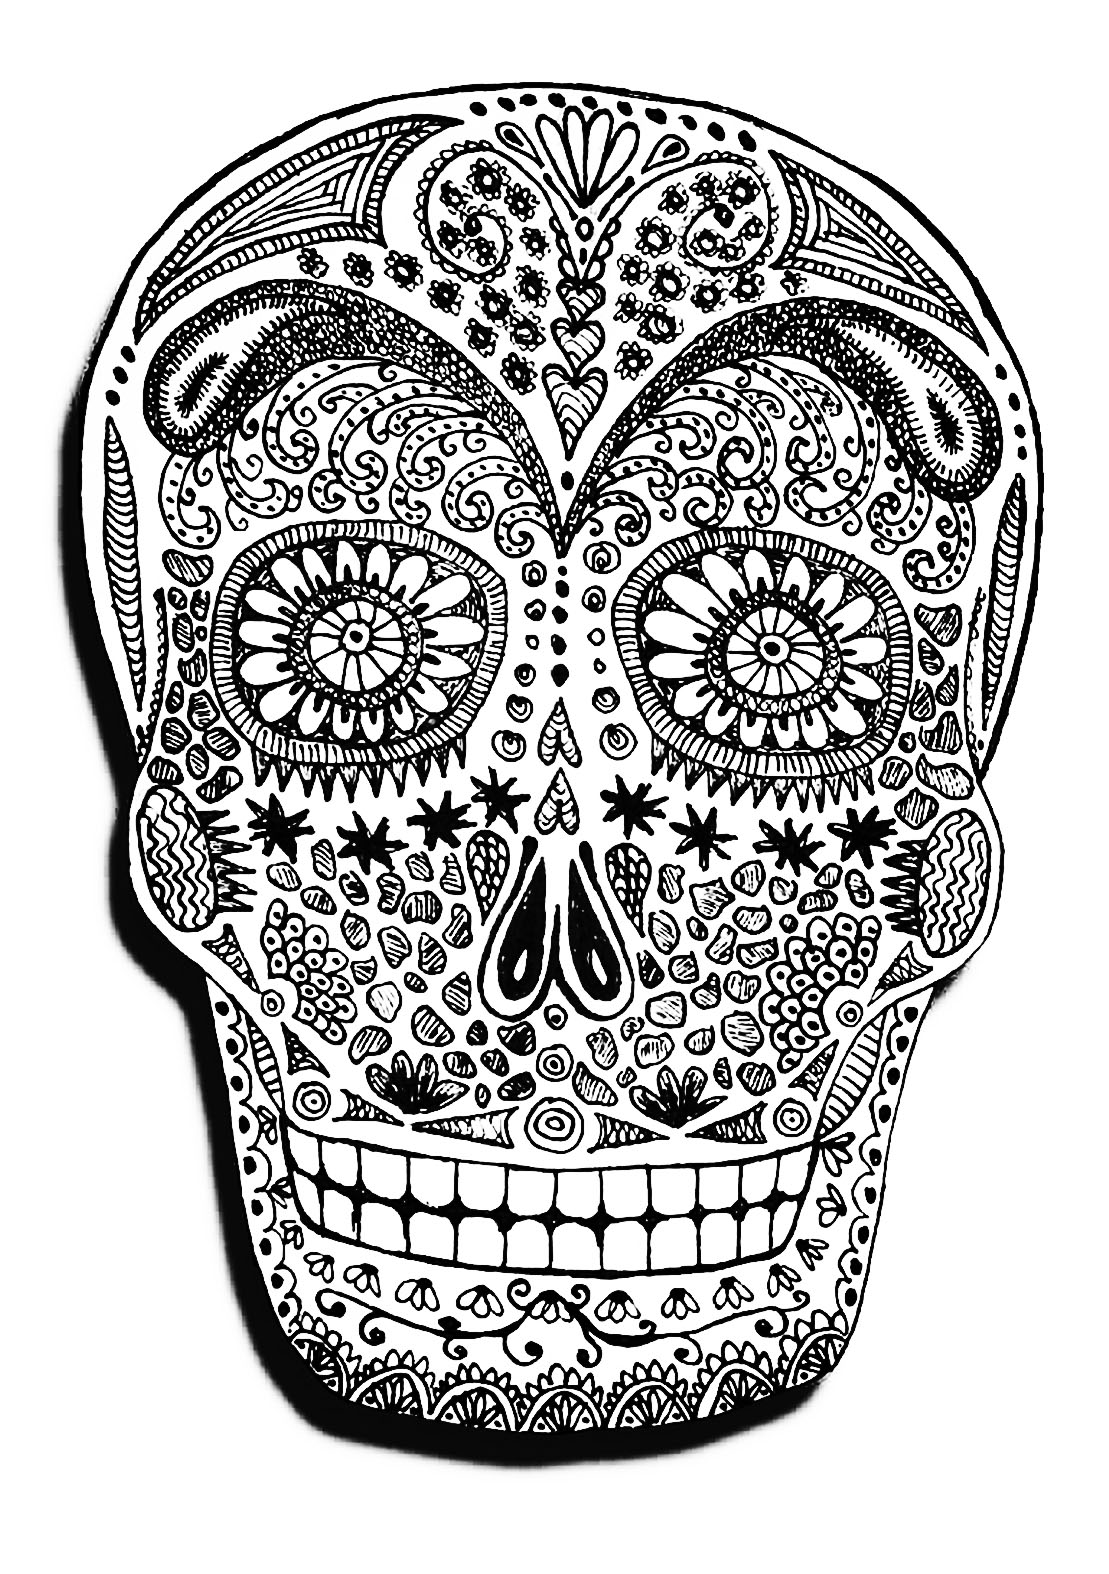 coloring page halloween skeleton head halloween skeleton head - Halloween Skeleton Coloring Pages